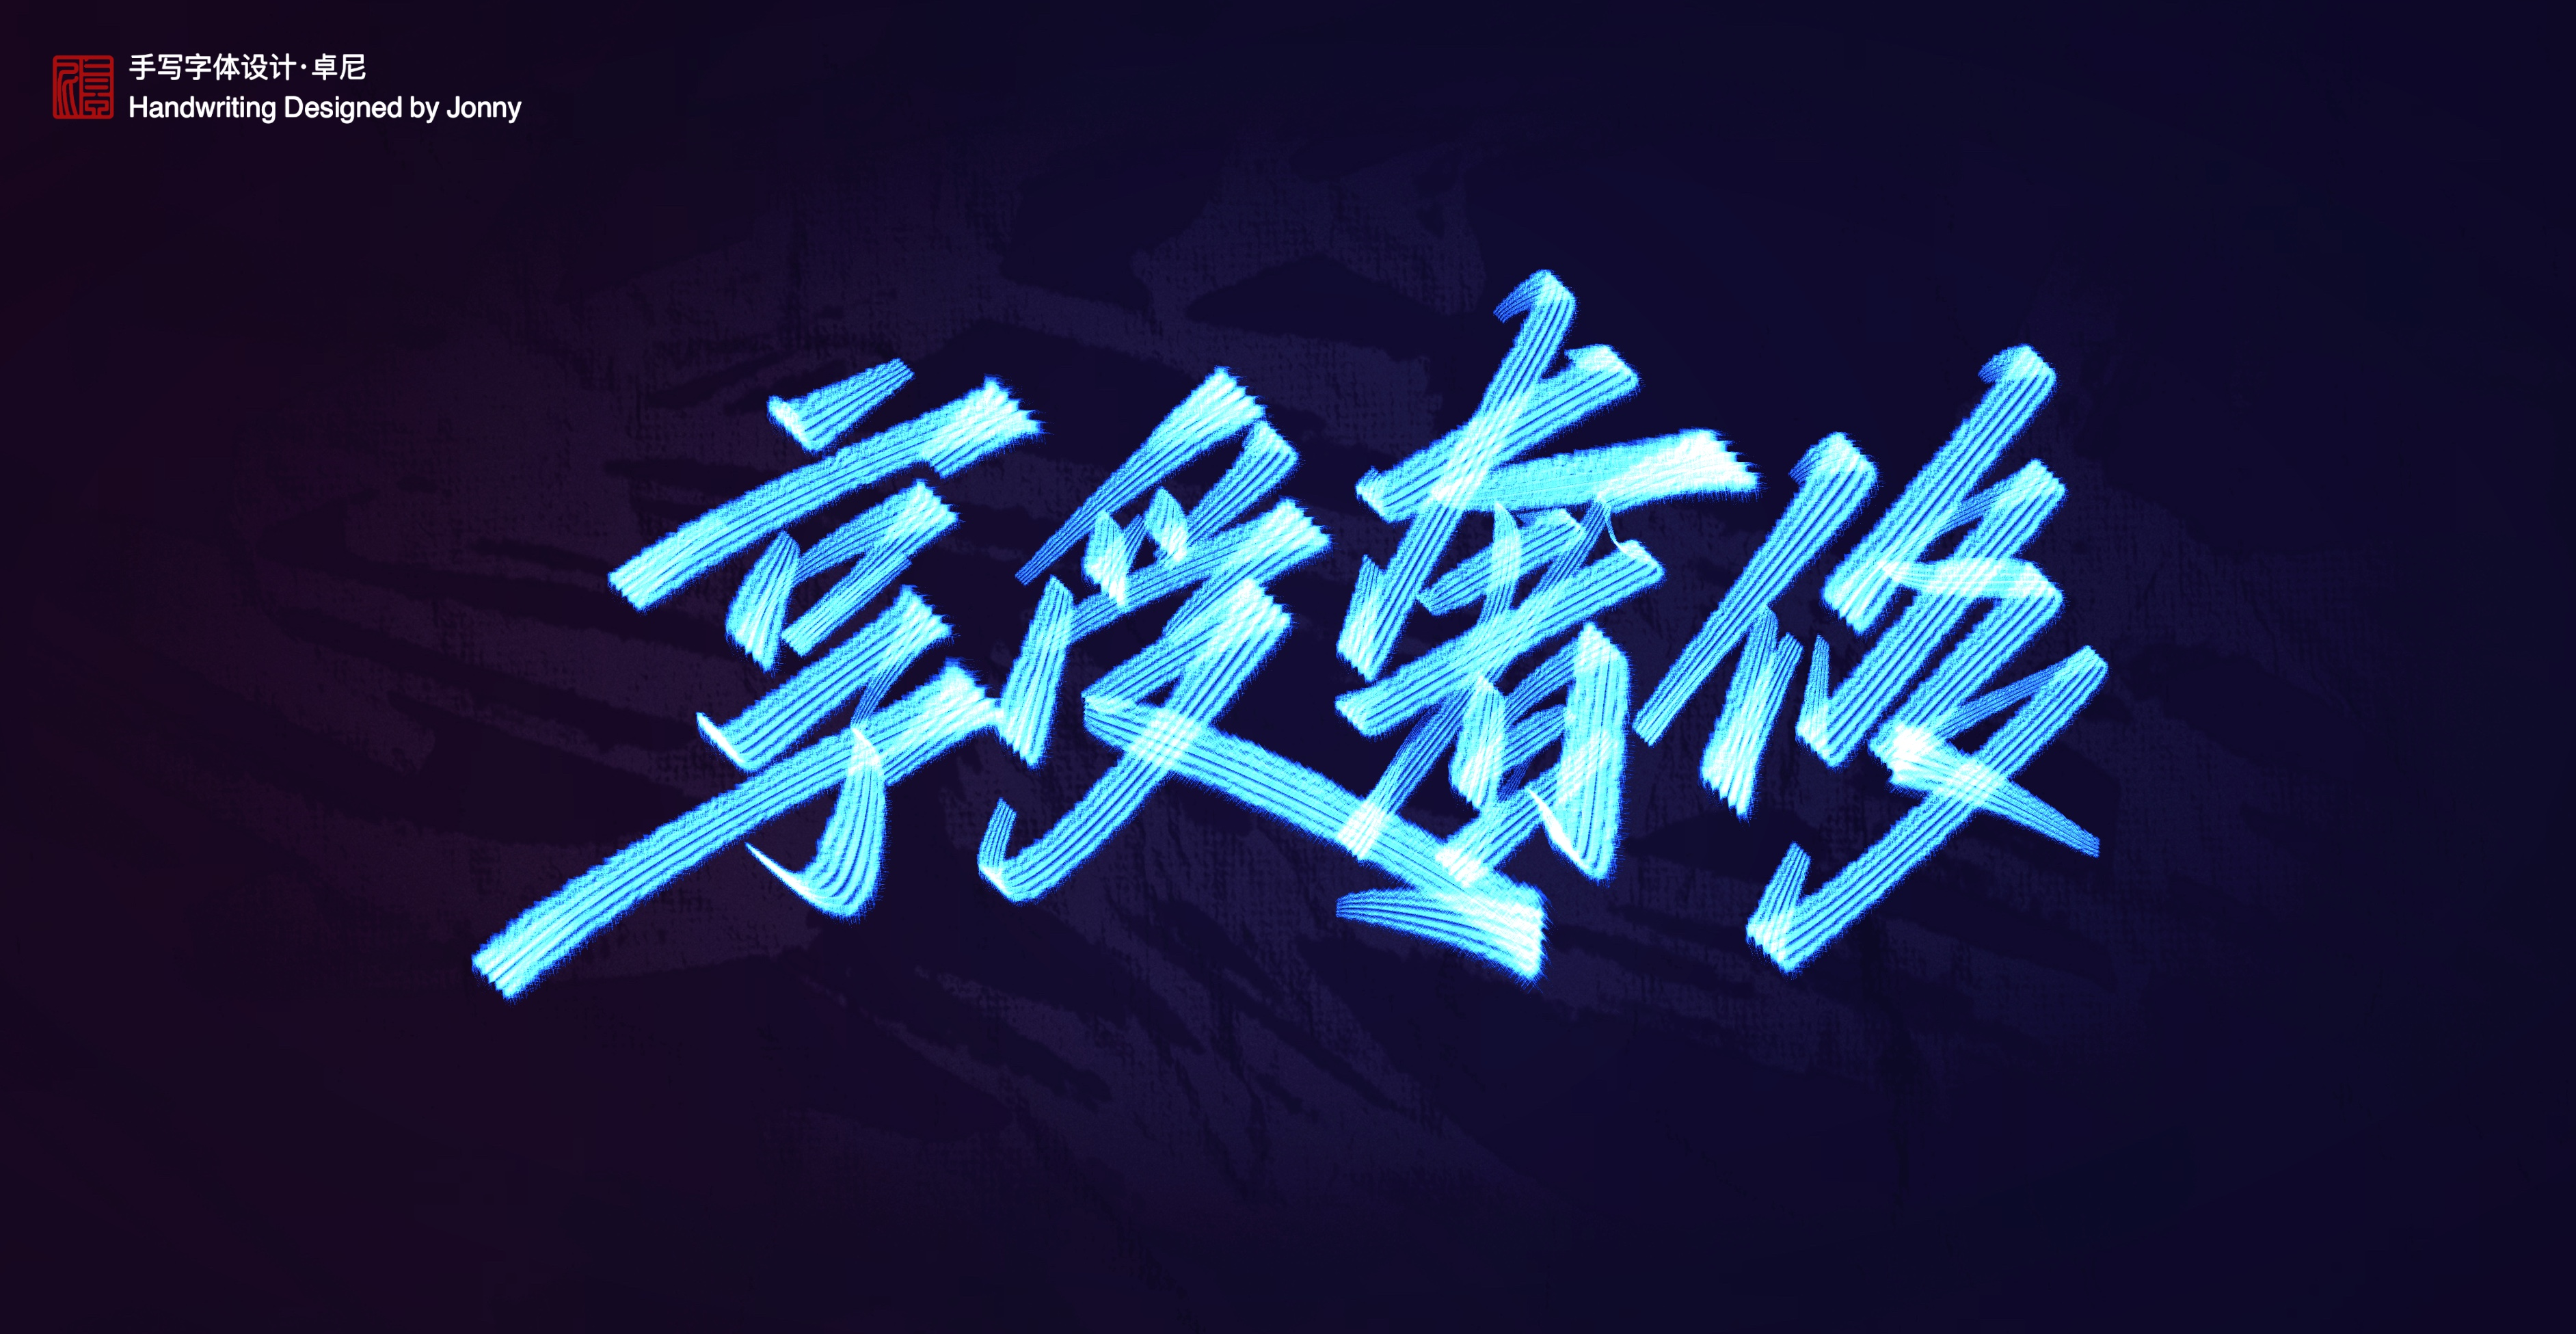 8P Collection of the latest Chinese font design schemes in 2021 #.45